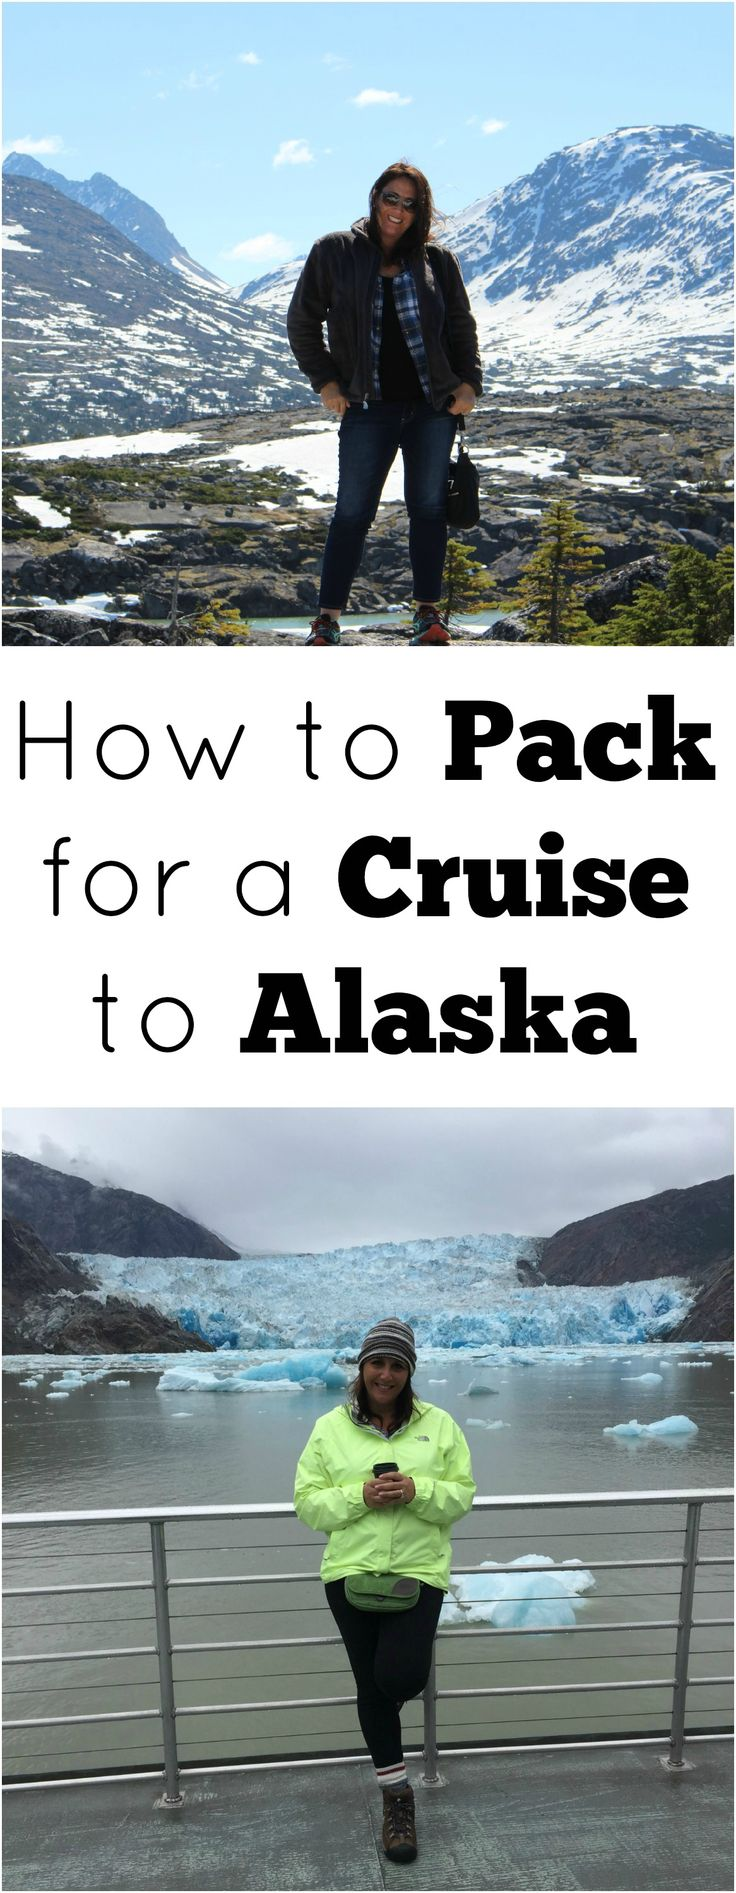 How to pack for a cruise to Alaska - printable packing list and advice #travel #alaska #alaskacruise #comebacknew